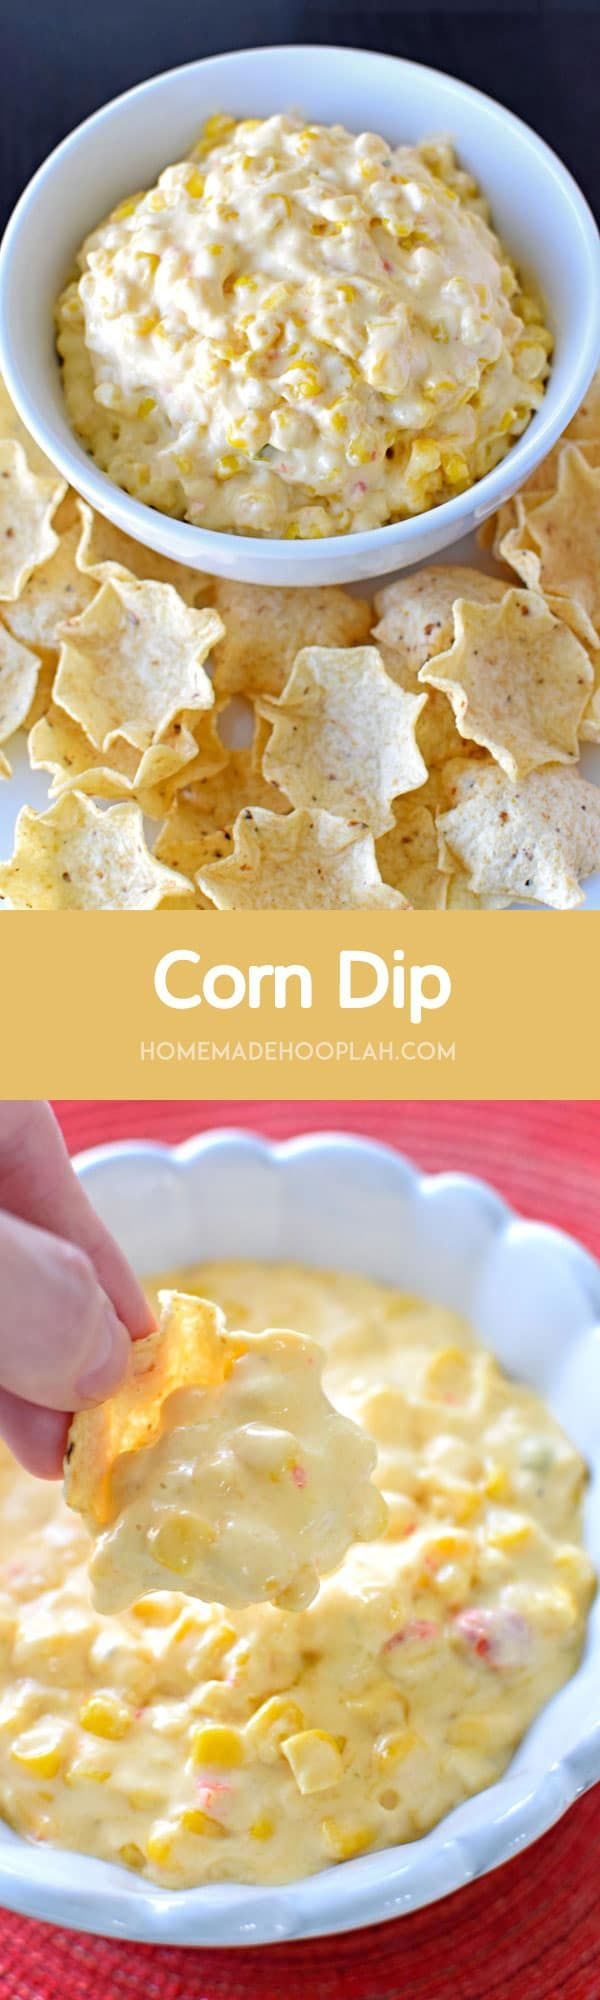 Corn Dip! A Mexican-style corn dip that's addictively good and that you can throw together in just 15 minutes. Makes for a perfect party snack!| HomemadeHooplah.com